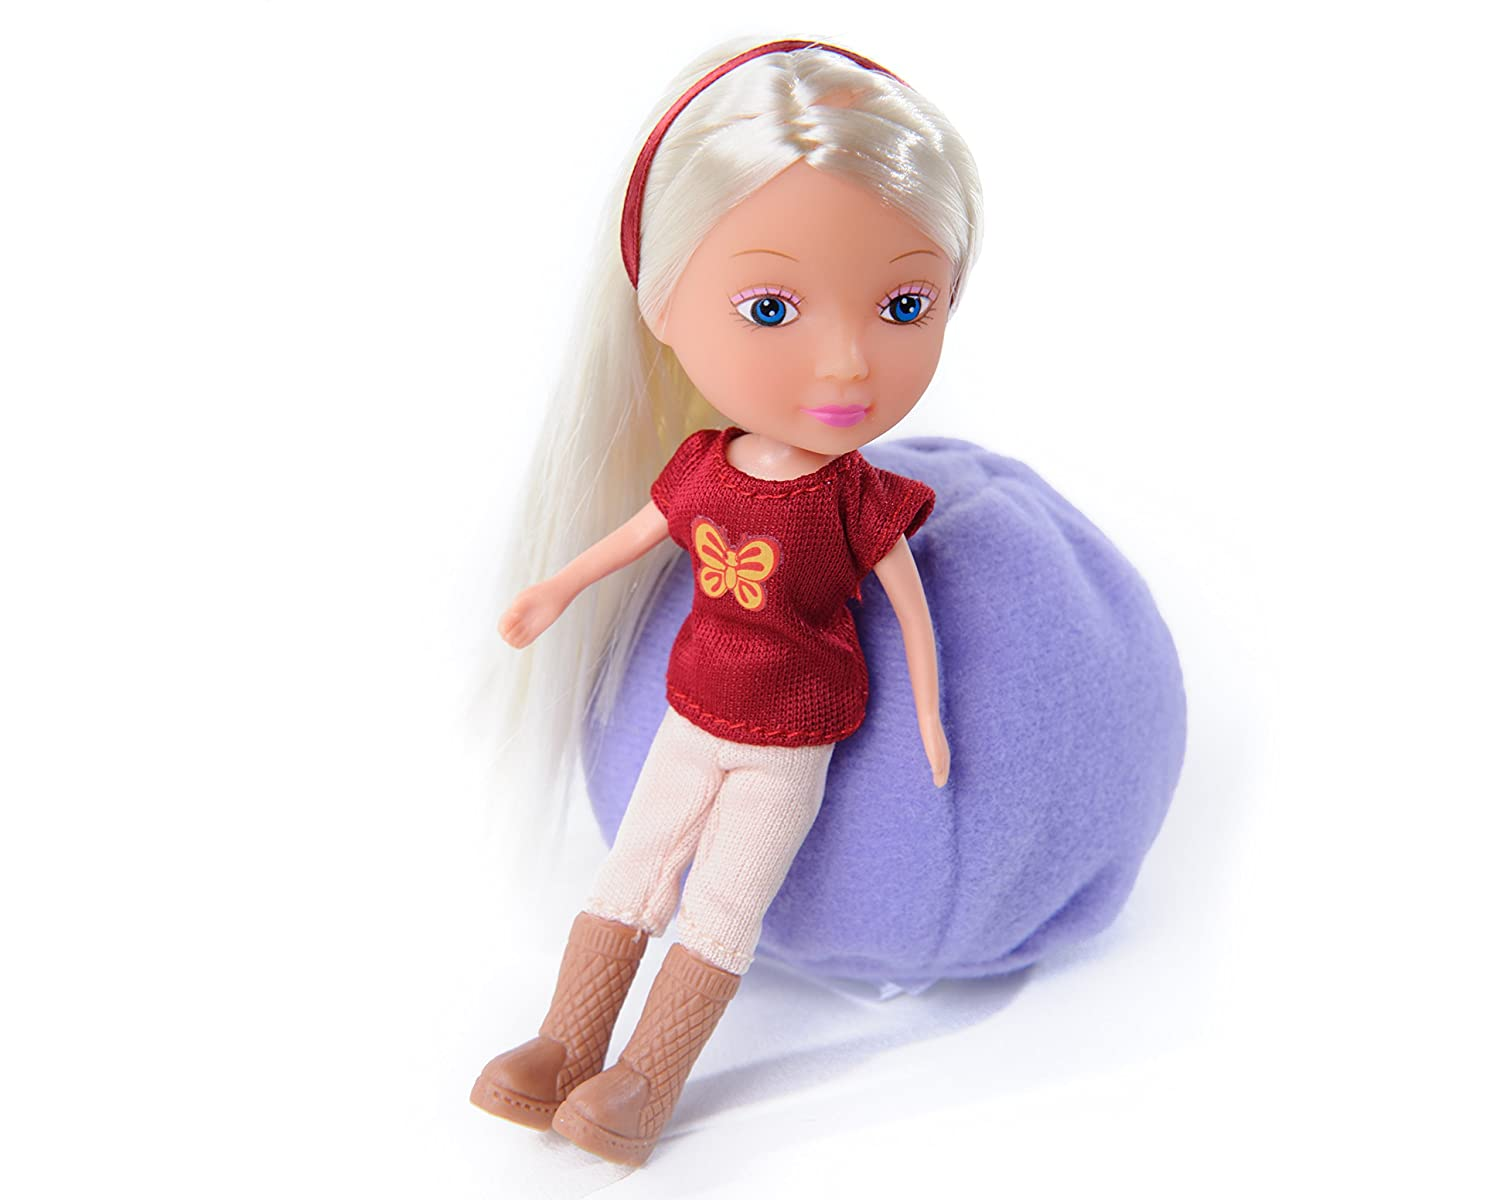 Neat-Oh Everyday Princess Haley Doll and Bean Bag Chair Neat Oh A1840XX